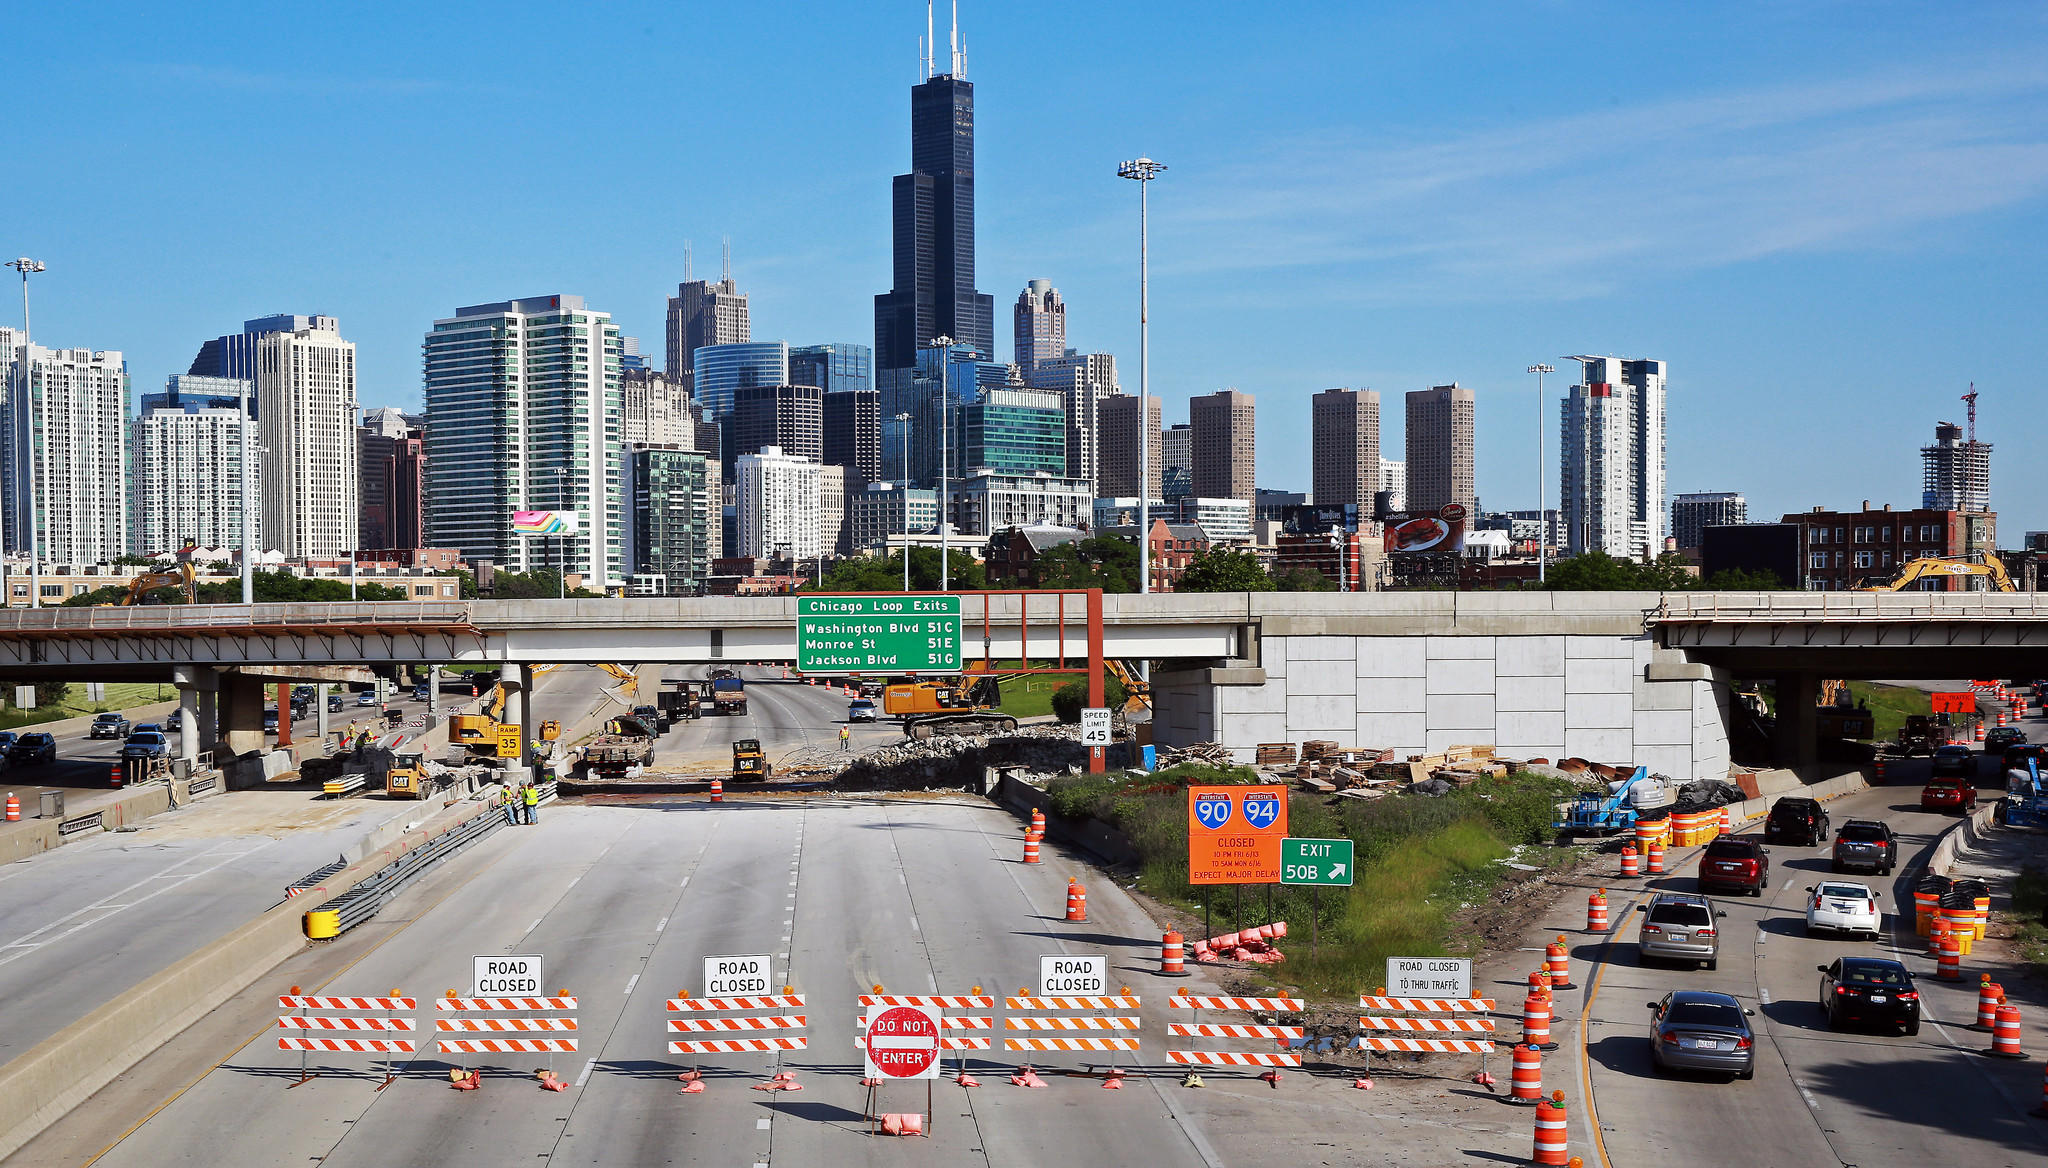 Inbound Kennedy Expressway traffic is diverted onto the Ohio Street off ramp as debris from the Ontario feeder ramp demolition is cleared.